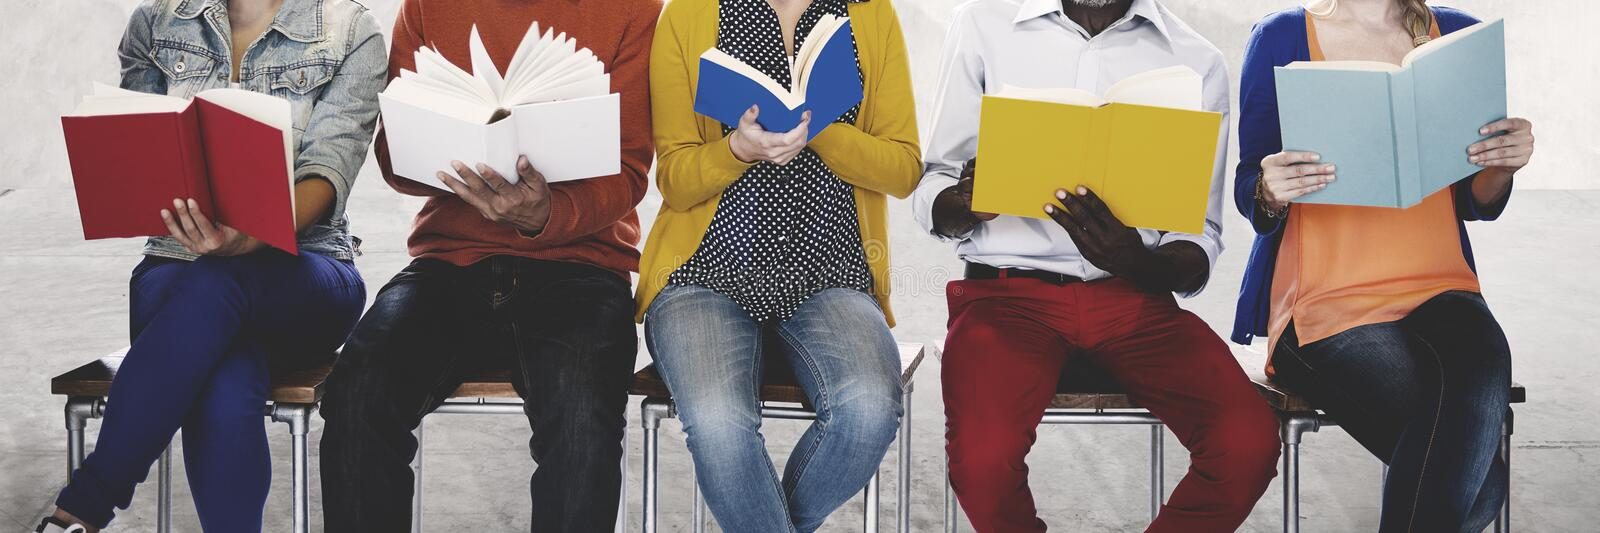 Diversity People Reading Book Inspiration Concept.  stock photography